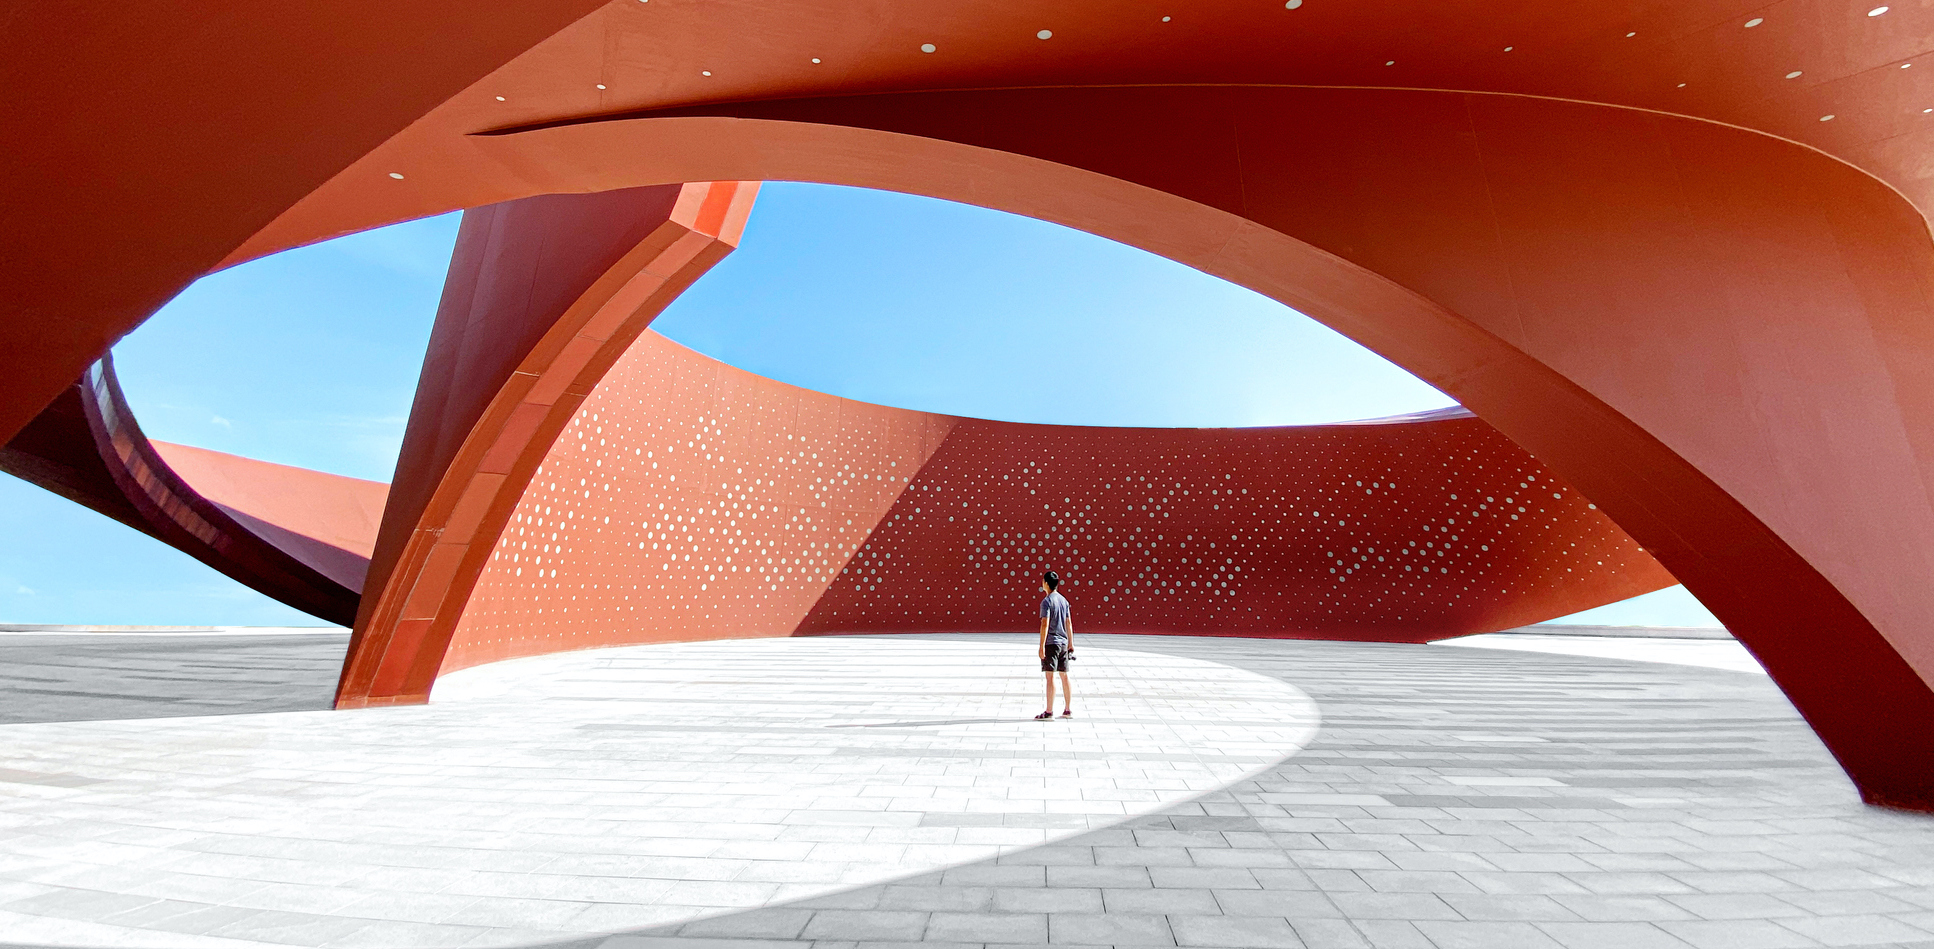 A person standing in a red curved abstract architectural space, 3D rendering